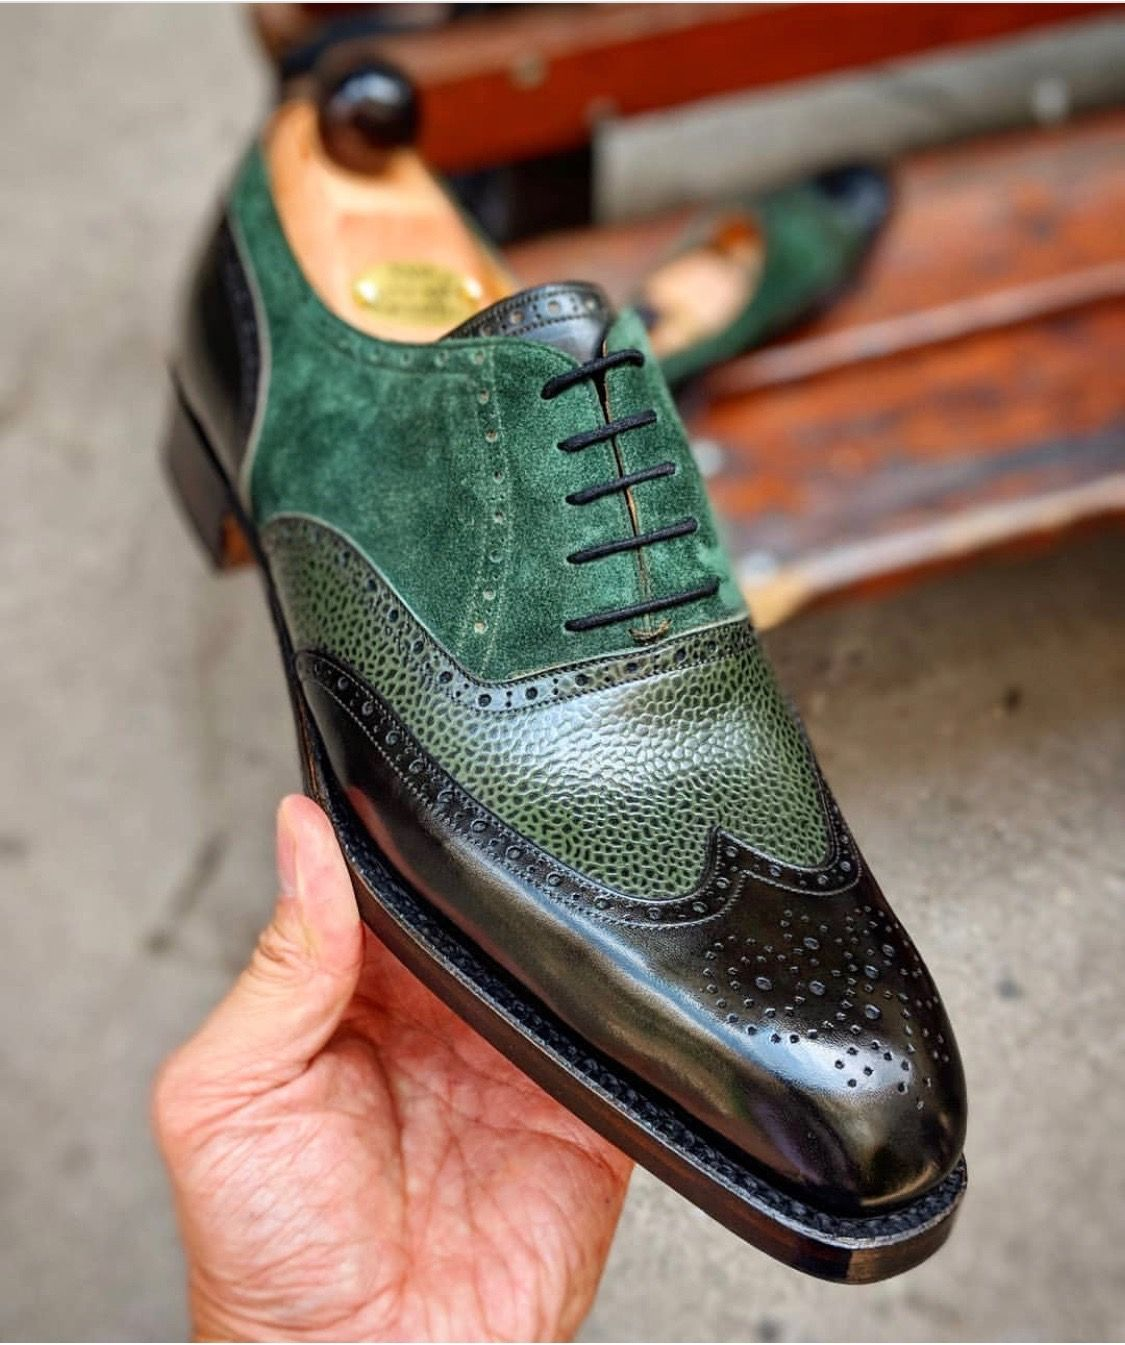 Pin by Thom Hoffman on Footwear in 2018 | Pinterest | Shoes